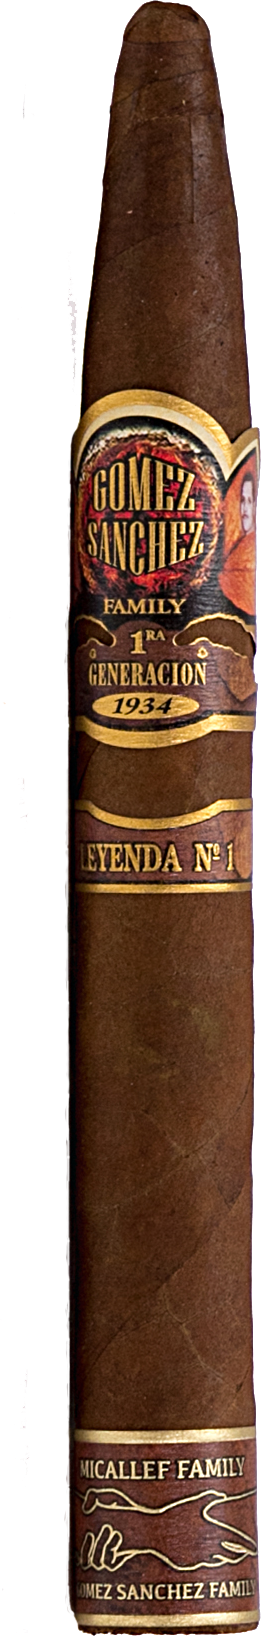 Leyenda No. 1 Single.jpg